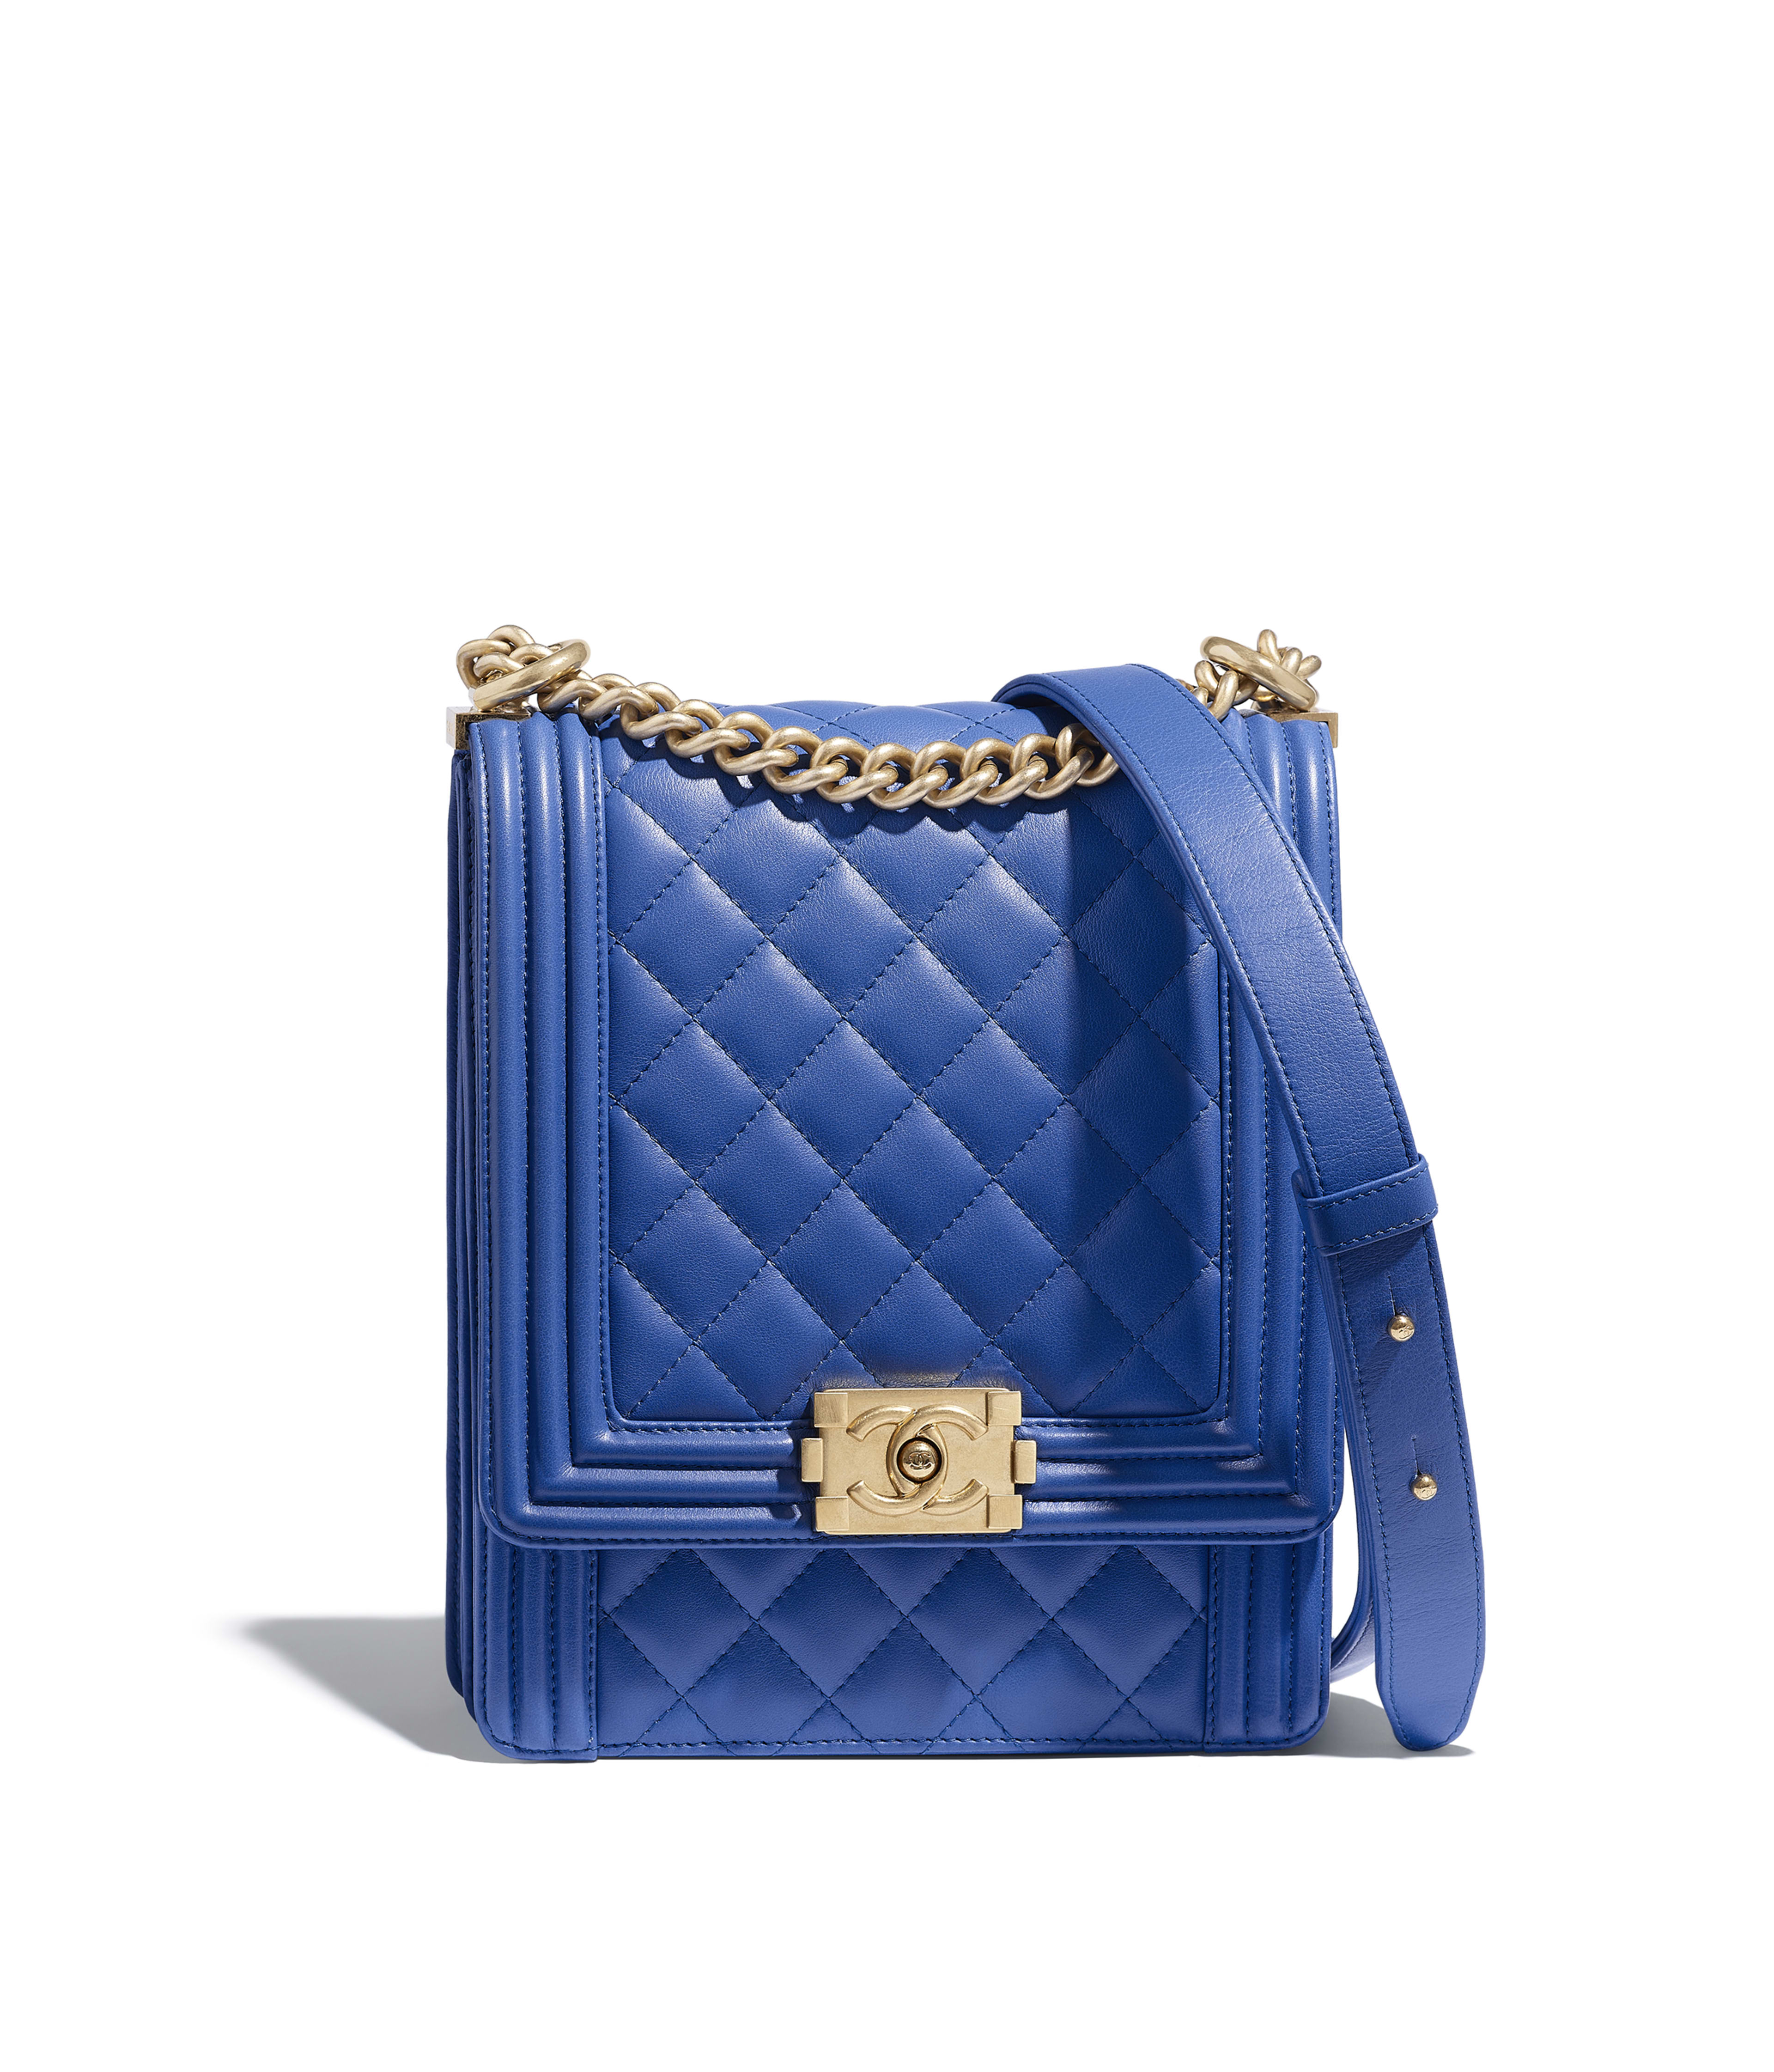 a204100344824a BOY CHANEL Handbag Calfskin & Gold-Tone Metal, Blue Ref. AS0130Y099395B646